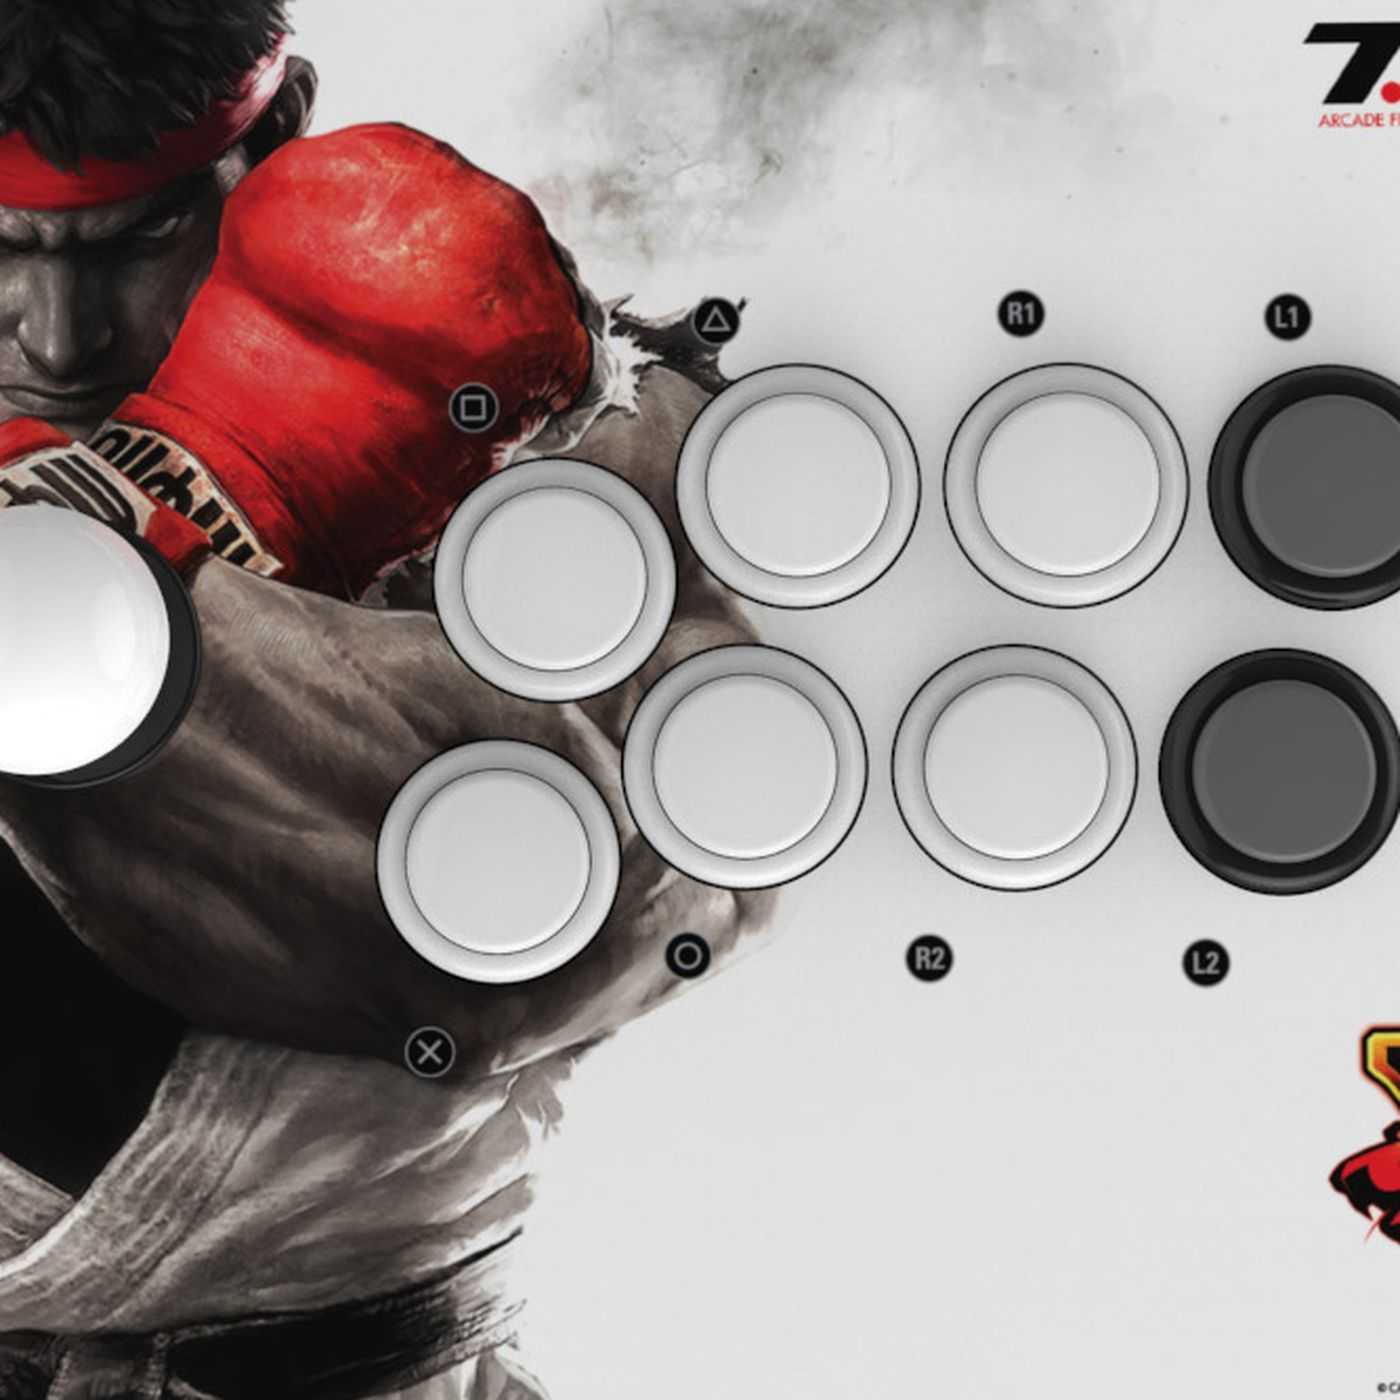 The Street Fighter 5 Arcade Stick Beginner S Guide For Pc Polygon